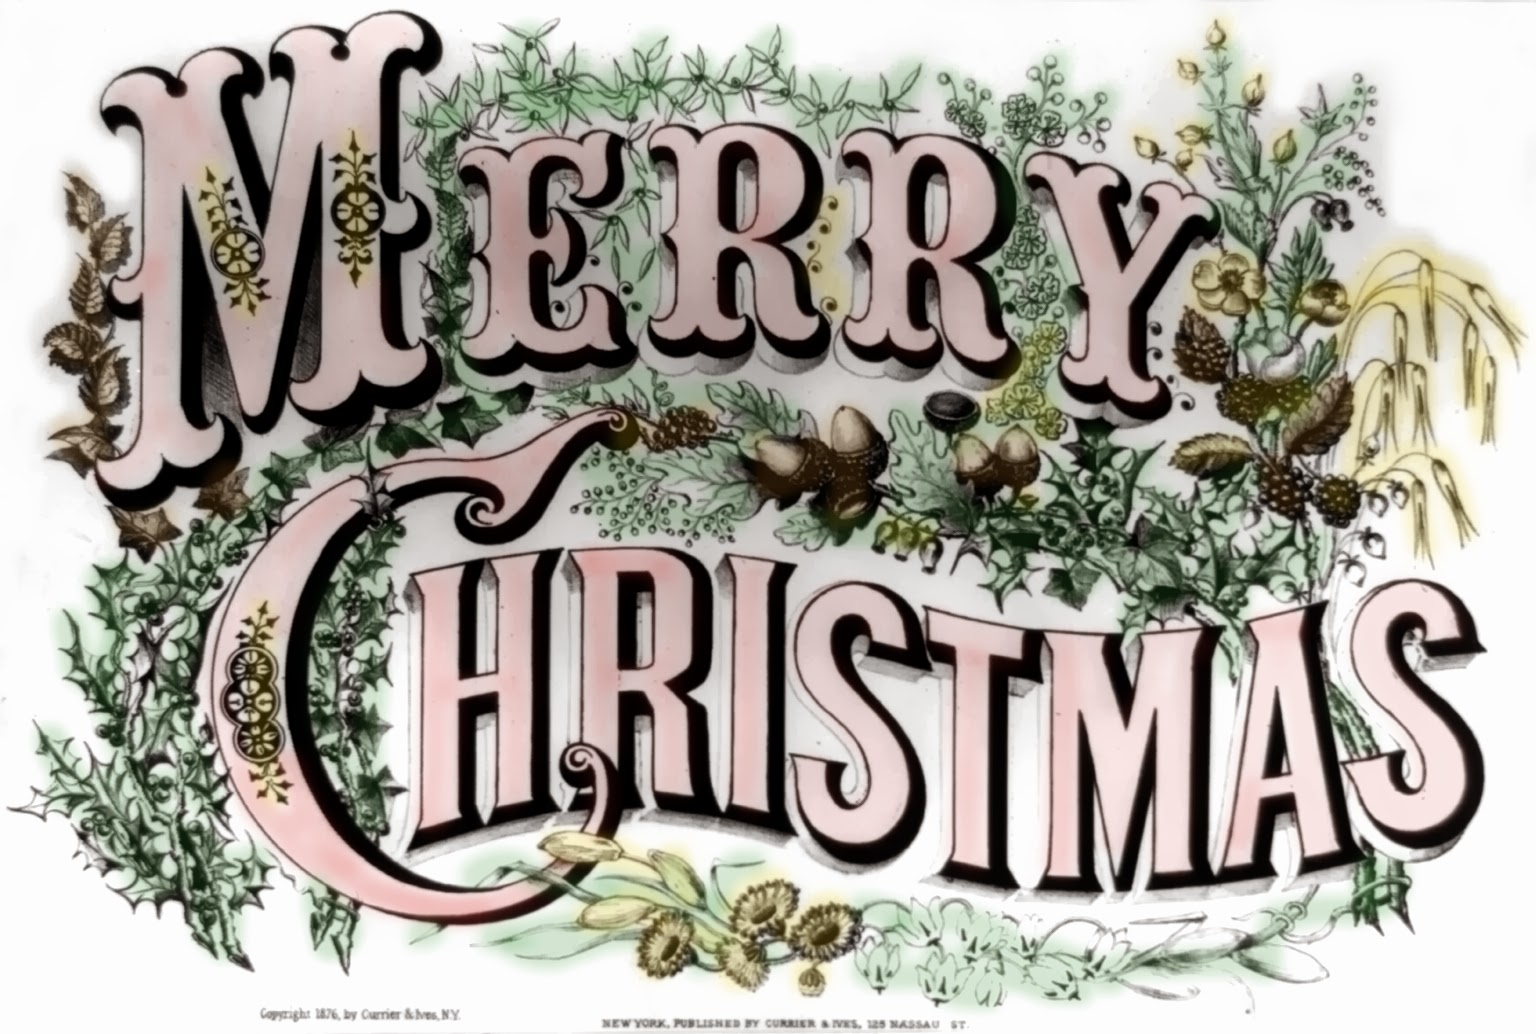 Currier and Ives Clip Art Public Domain Clip Art Photos and Images.